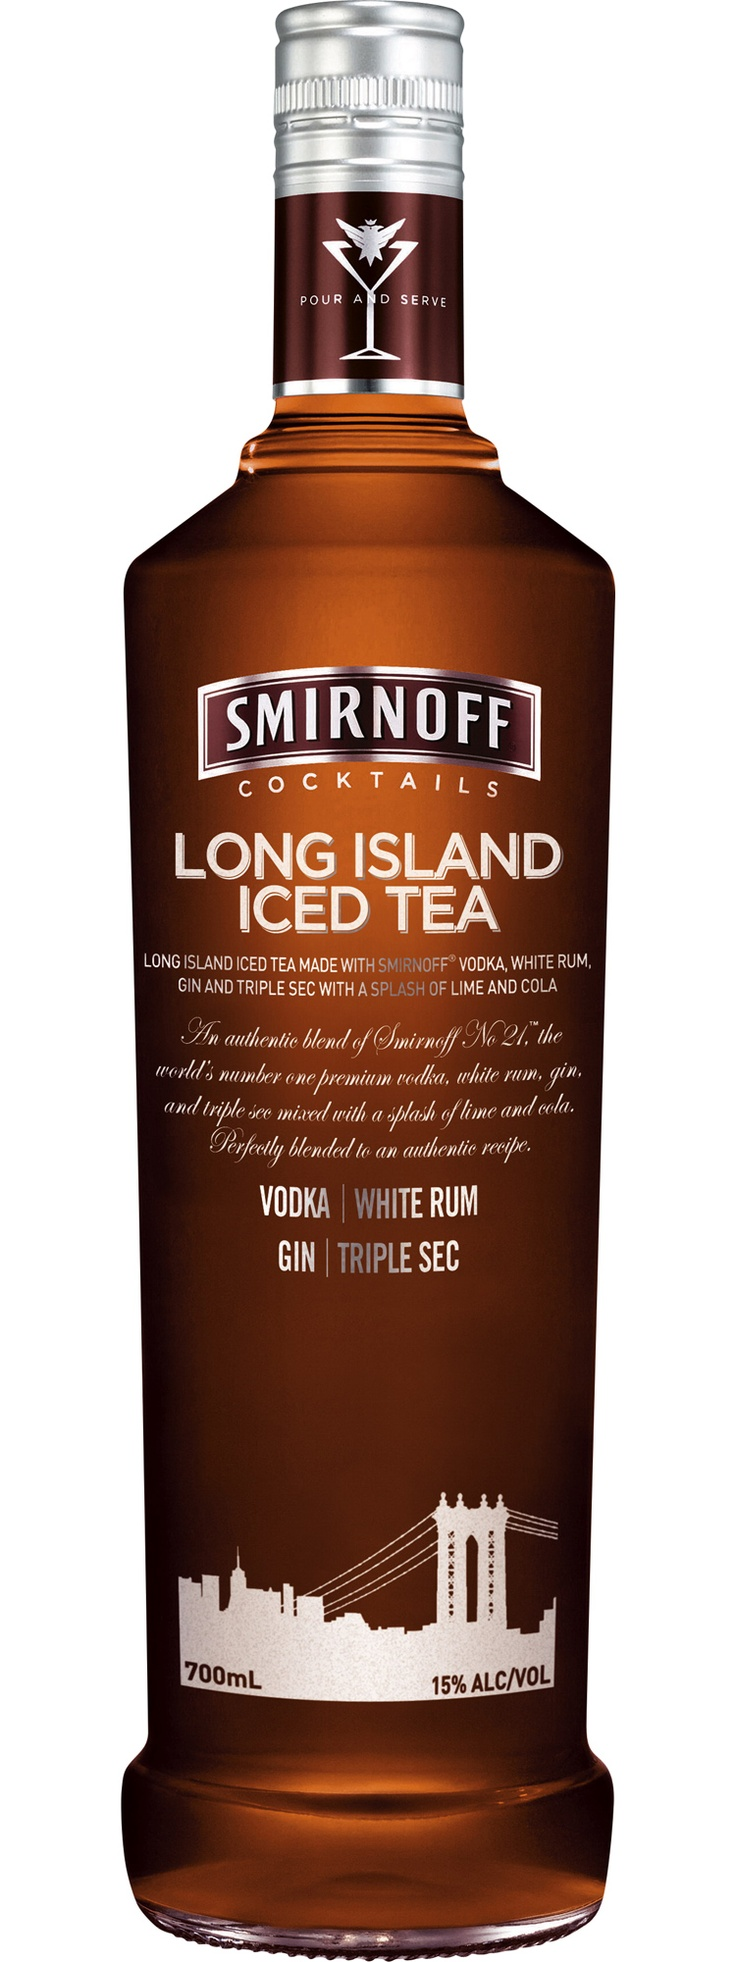 Smirnoff Long Island Iced Tea | Dan Murphy's | Buy Wine, Champagne, Beer & Spirits Online